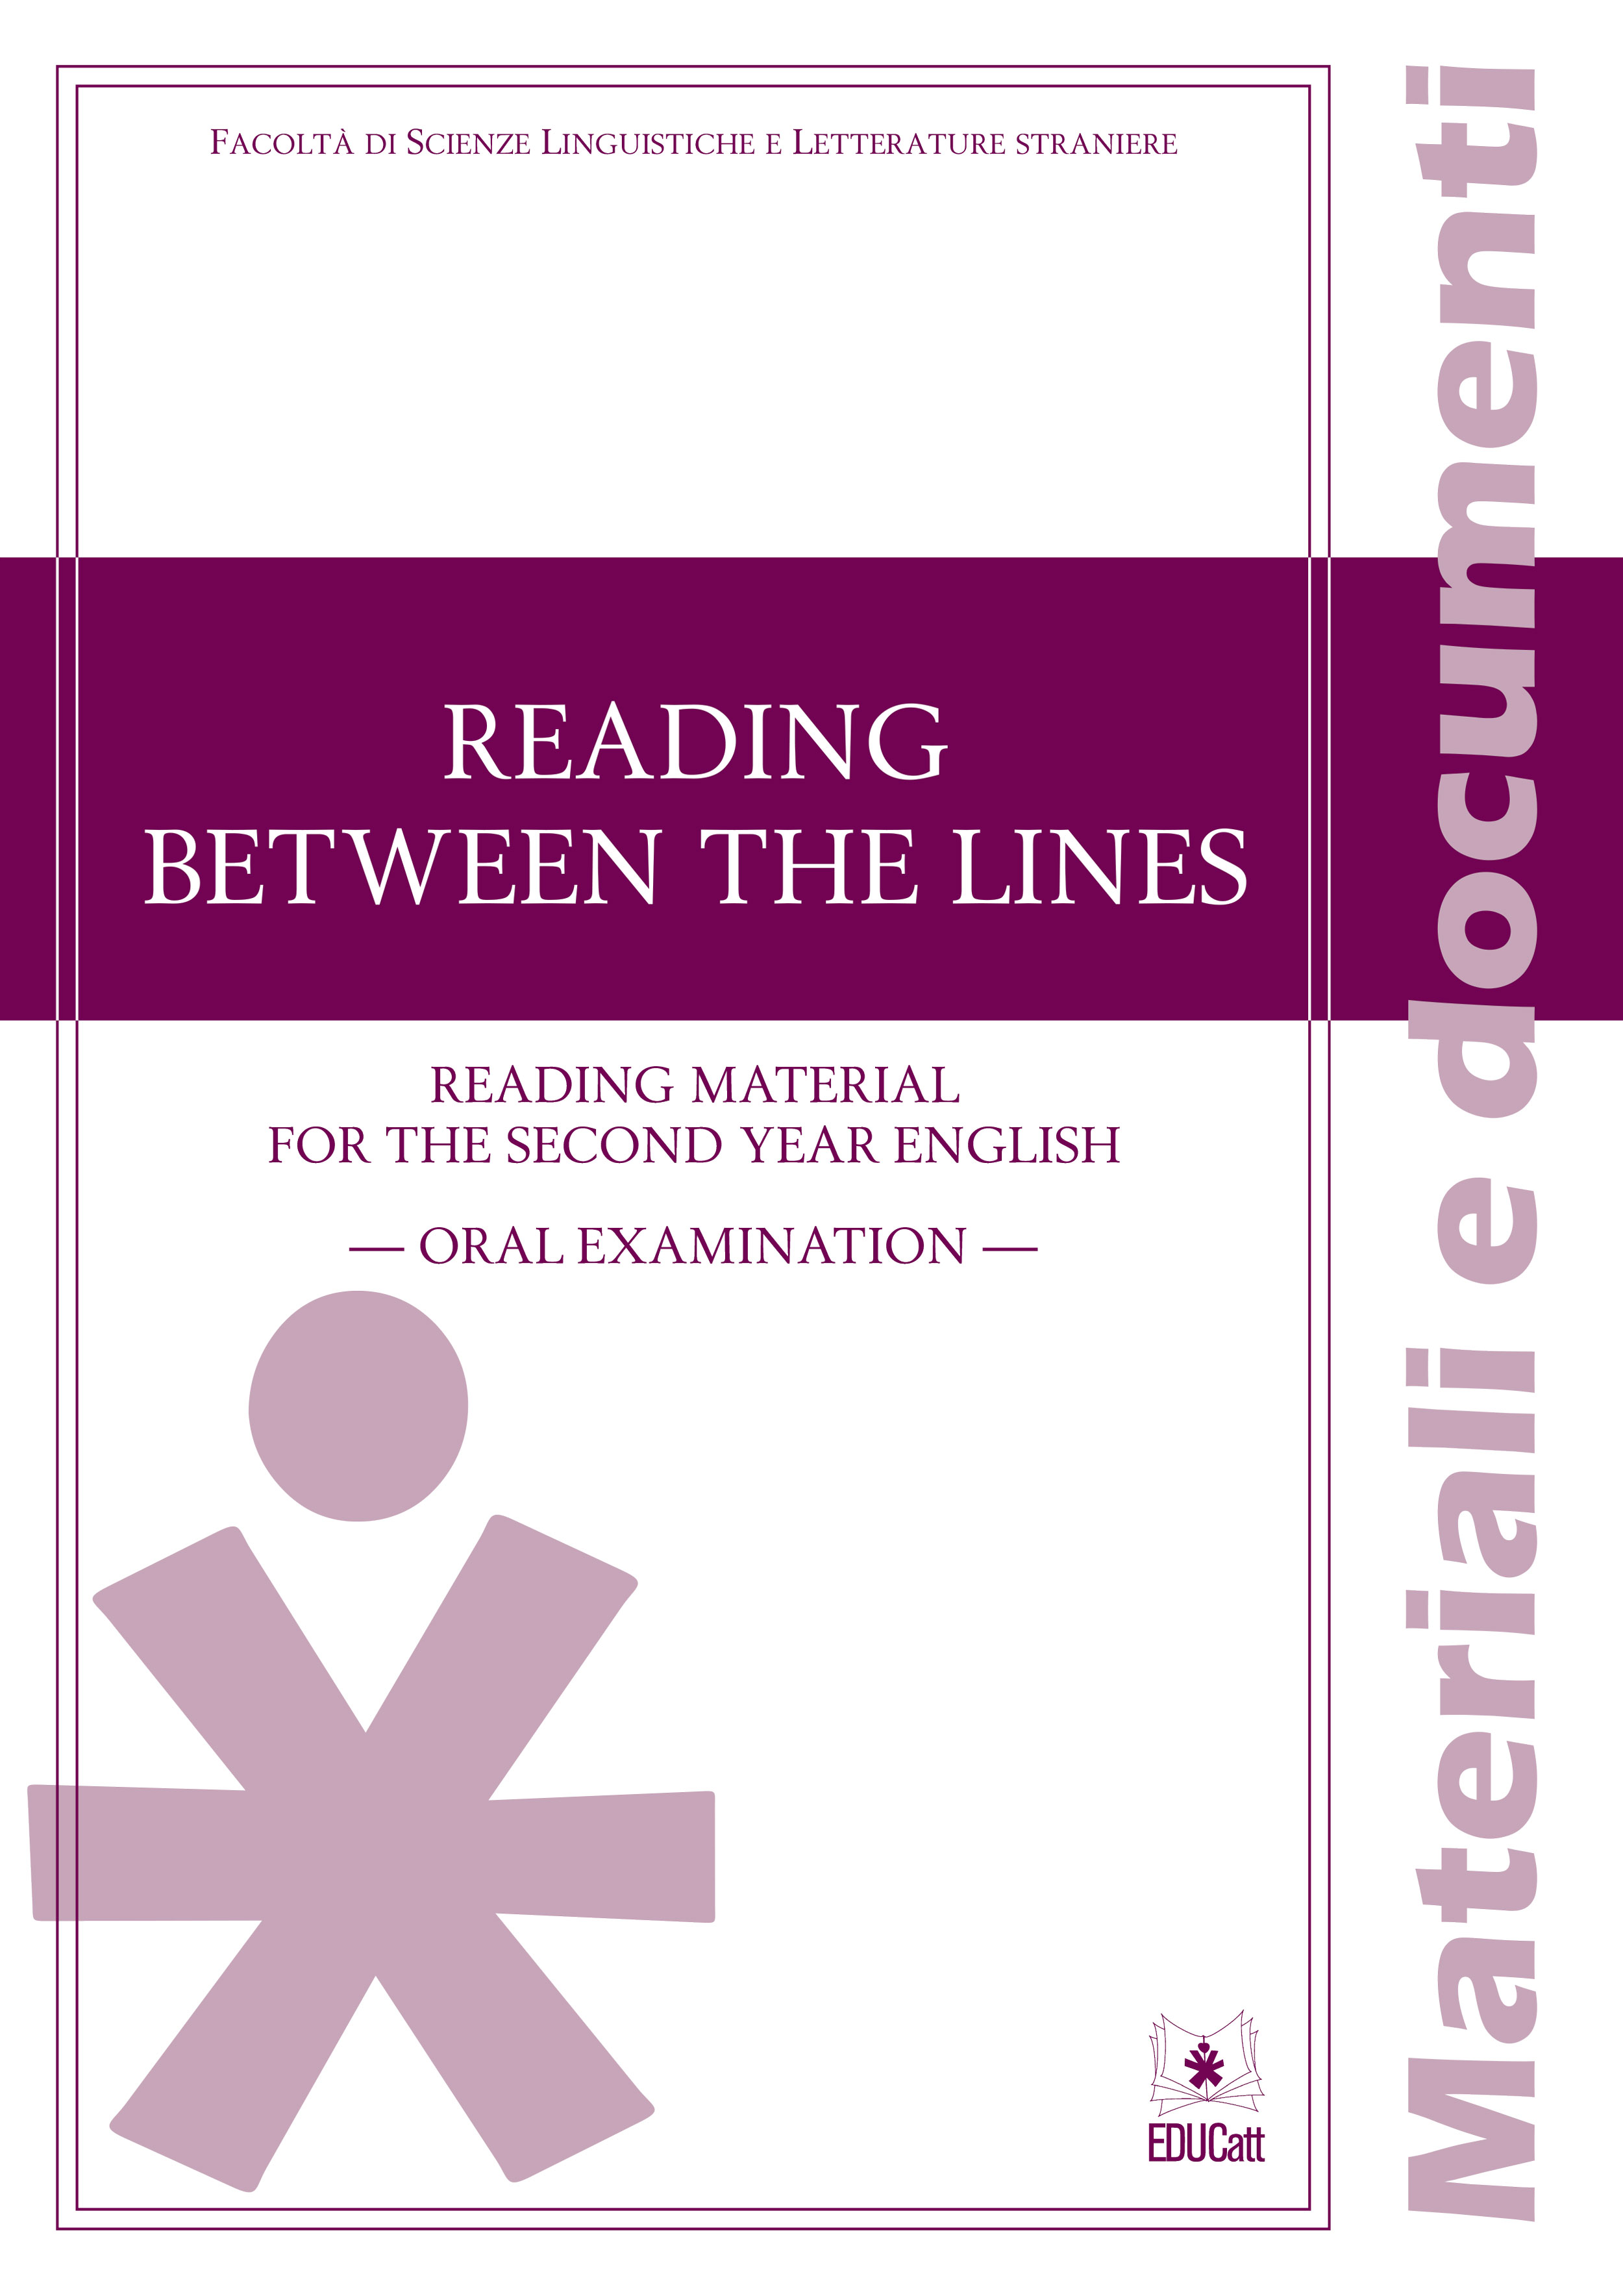 READING BETWEEN THE LINES. READING MATERIAL FOR THE SECOND YEAR ENGLISH ORAL EXAMINATION 2018